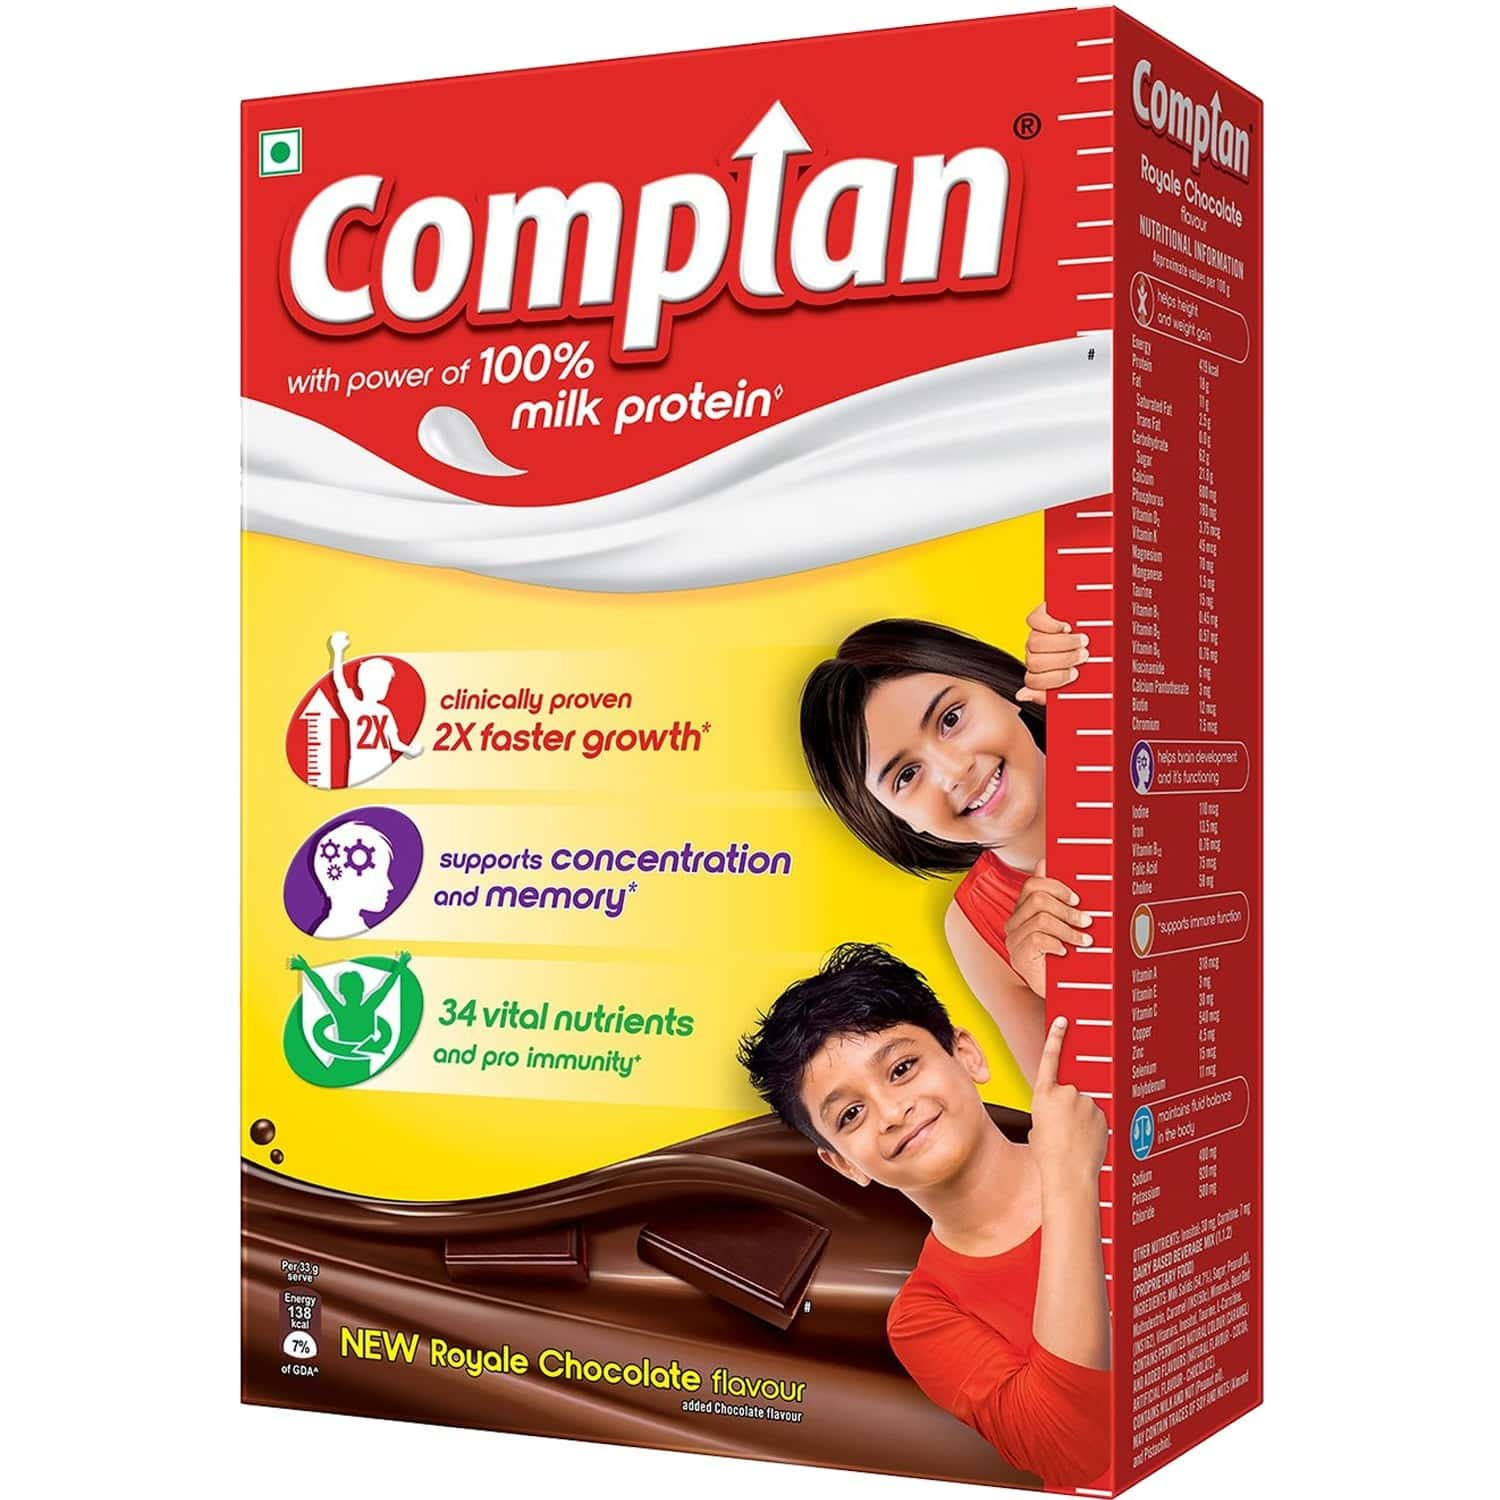 Complan Nutrition And Health Drink Royale Chocolate 750g, Refill Box